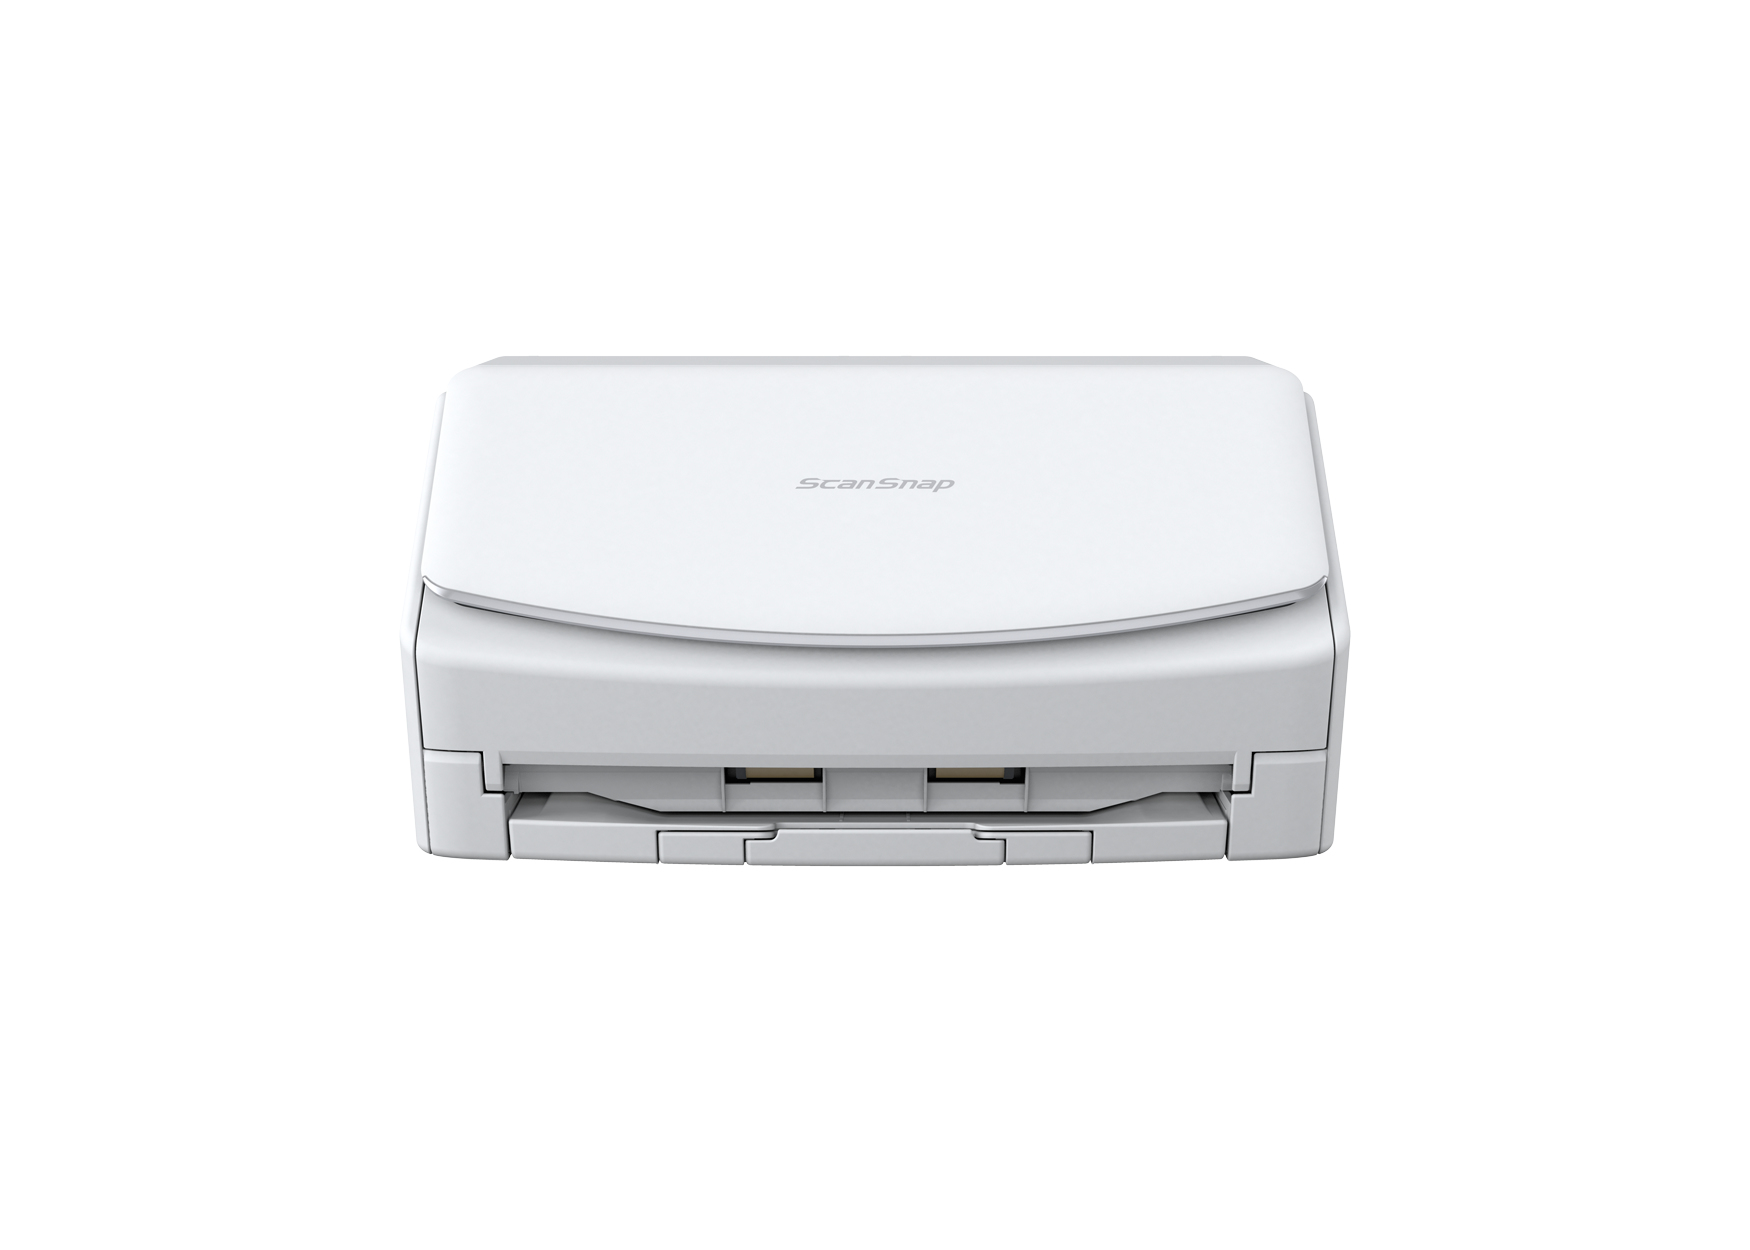 ScanSnap iX1500 A4 Document Scanner